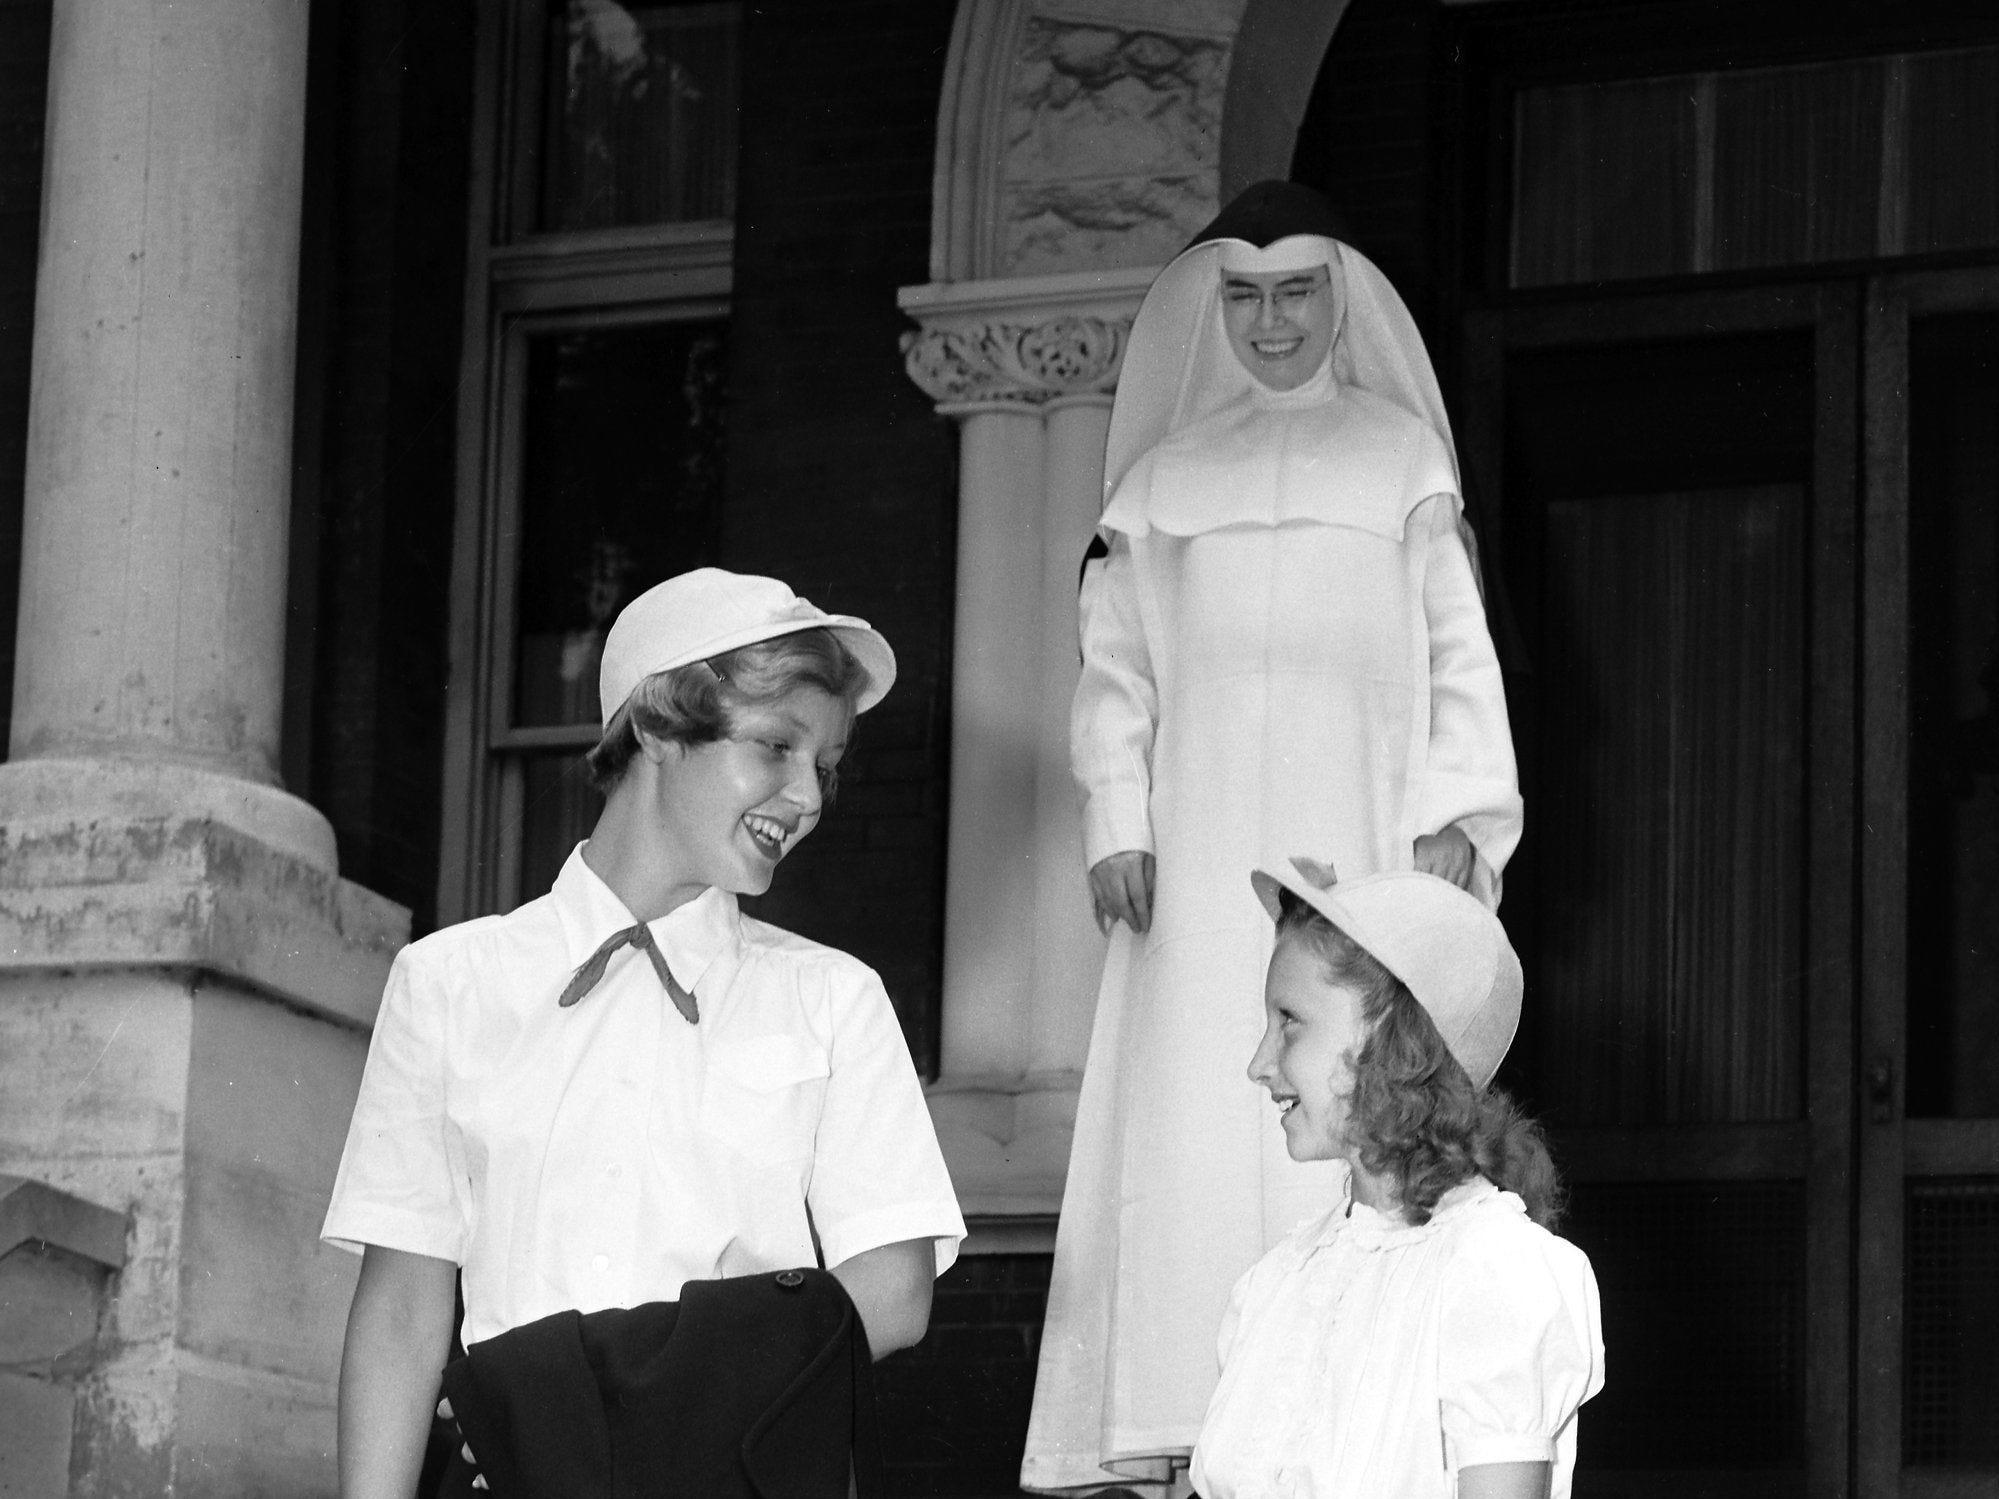 Margaret Montedonico, left, 15-year-old daughter of Mr. and Mrs. Louis Montedonico of 1637 York Avenue, and Nikki Lentz, 10, daughter of Mr. and Mrs. H.M. Lentz of Ellendale, model uniforms pupils of St. Agnes Academy will wear in the fall. Sister Suzanne, school principal, looks on approvingly on June 29, 1951.